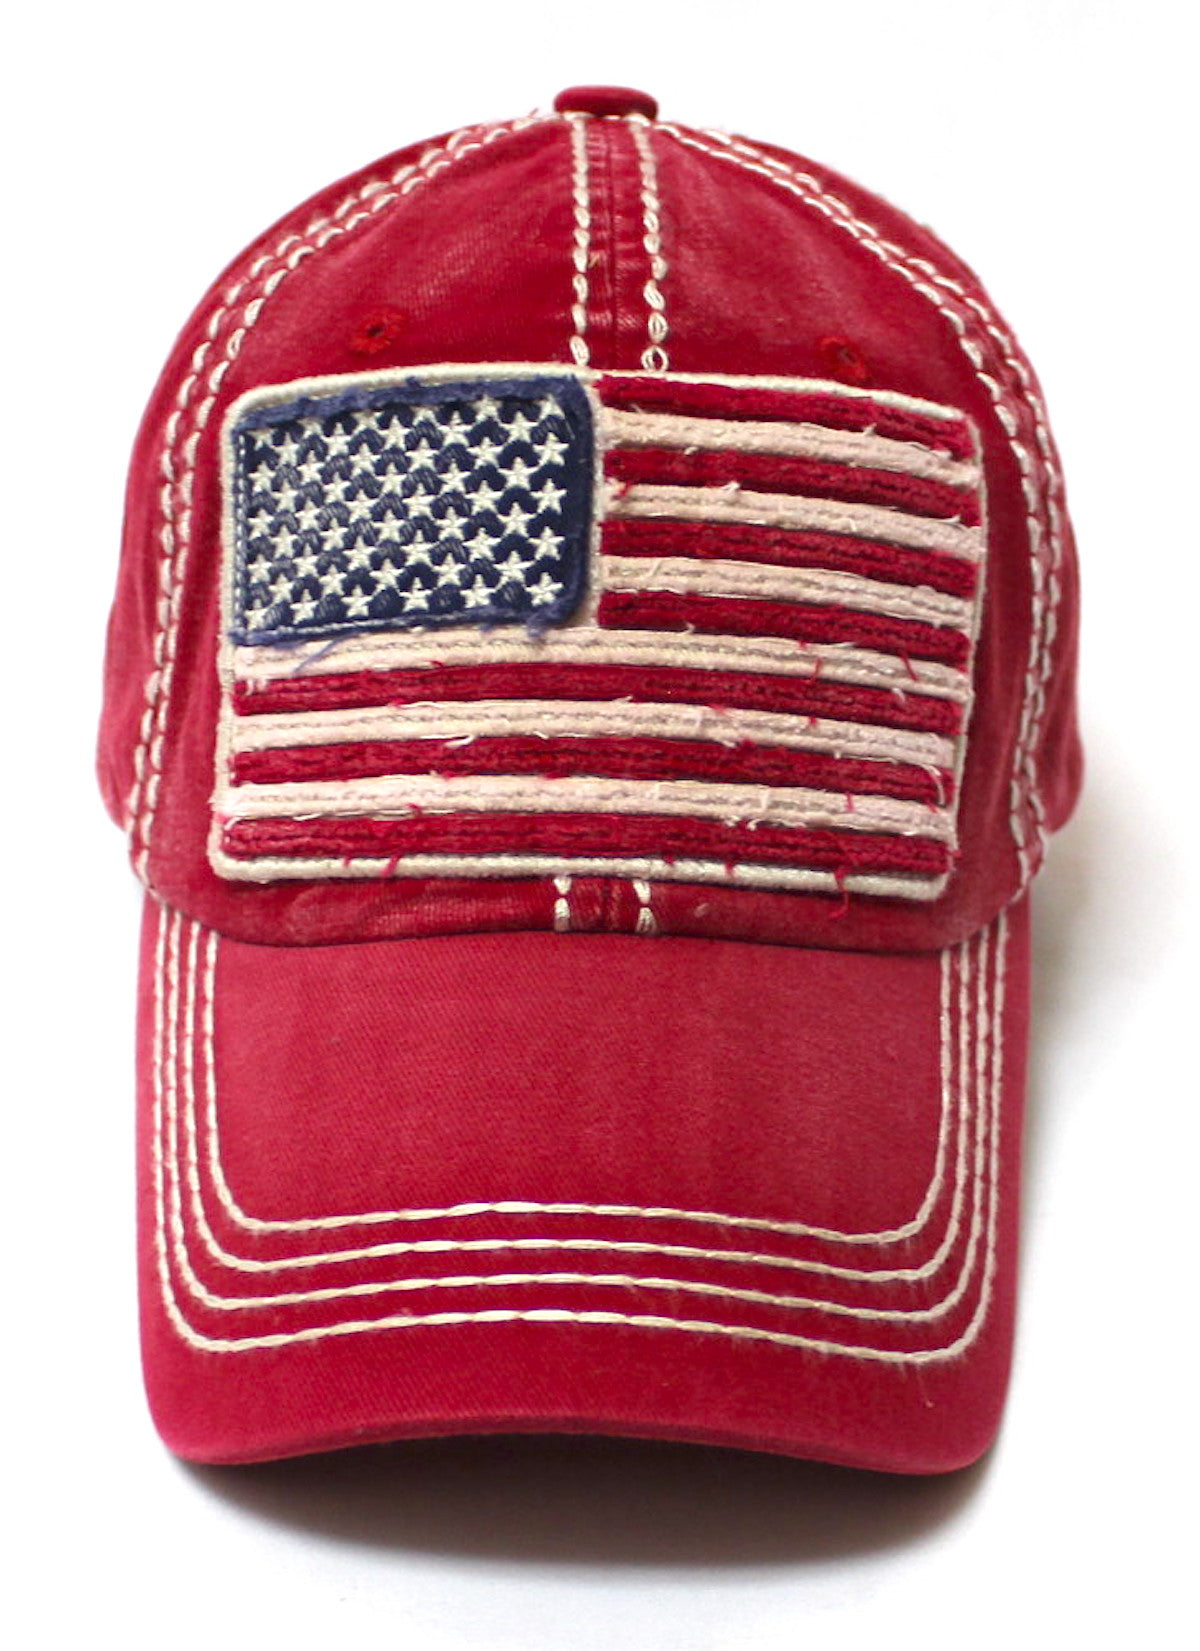 CAPS 'N VINTAGE Vintage Red Oversized American Flag Patch Embroidery Baseball Cap - Caps 'N Vintage